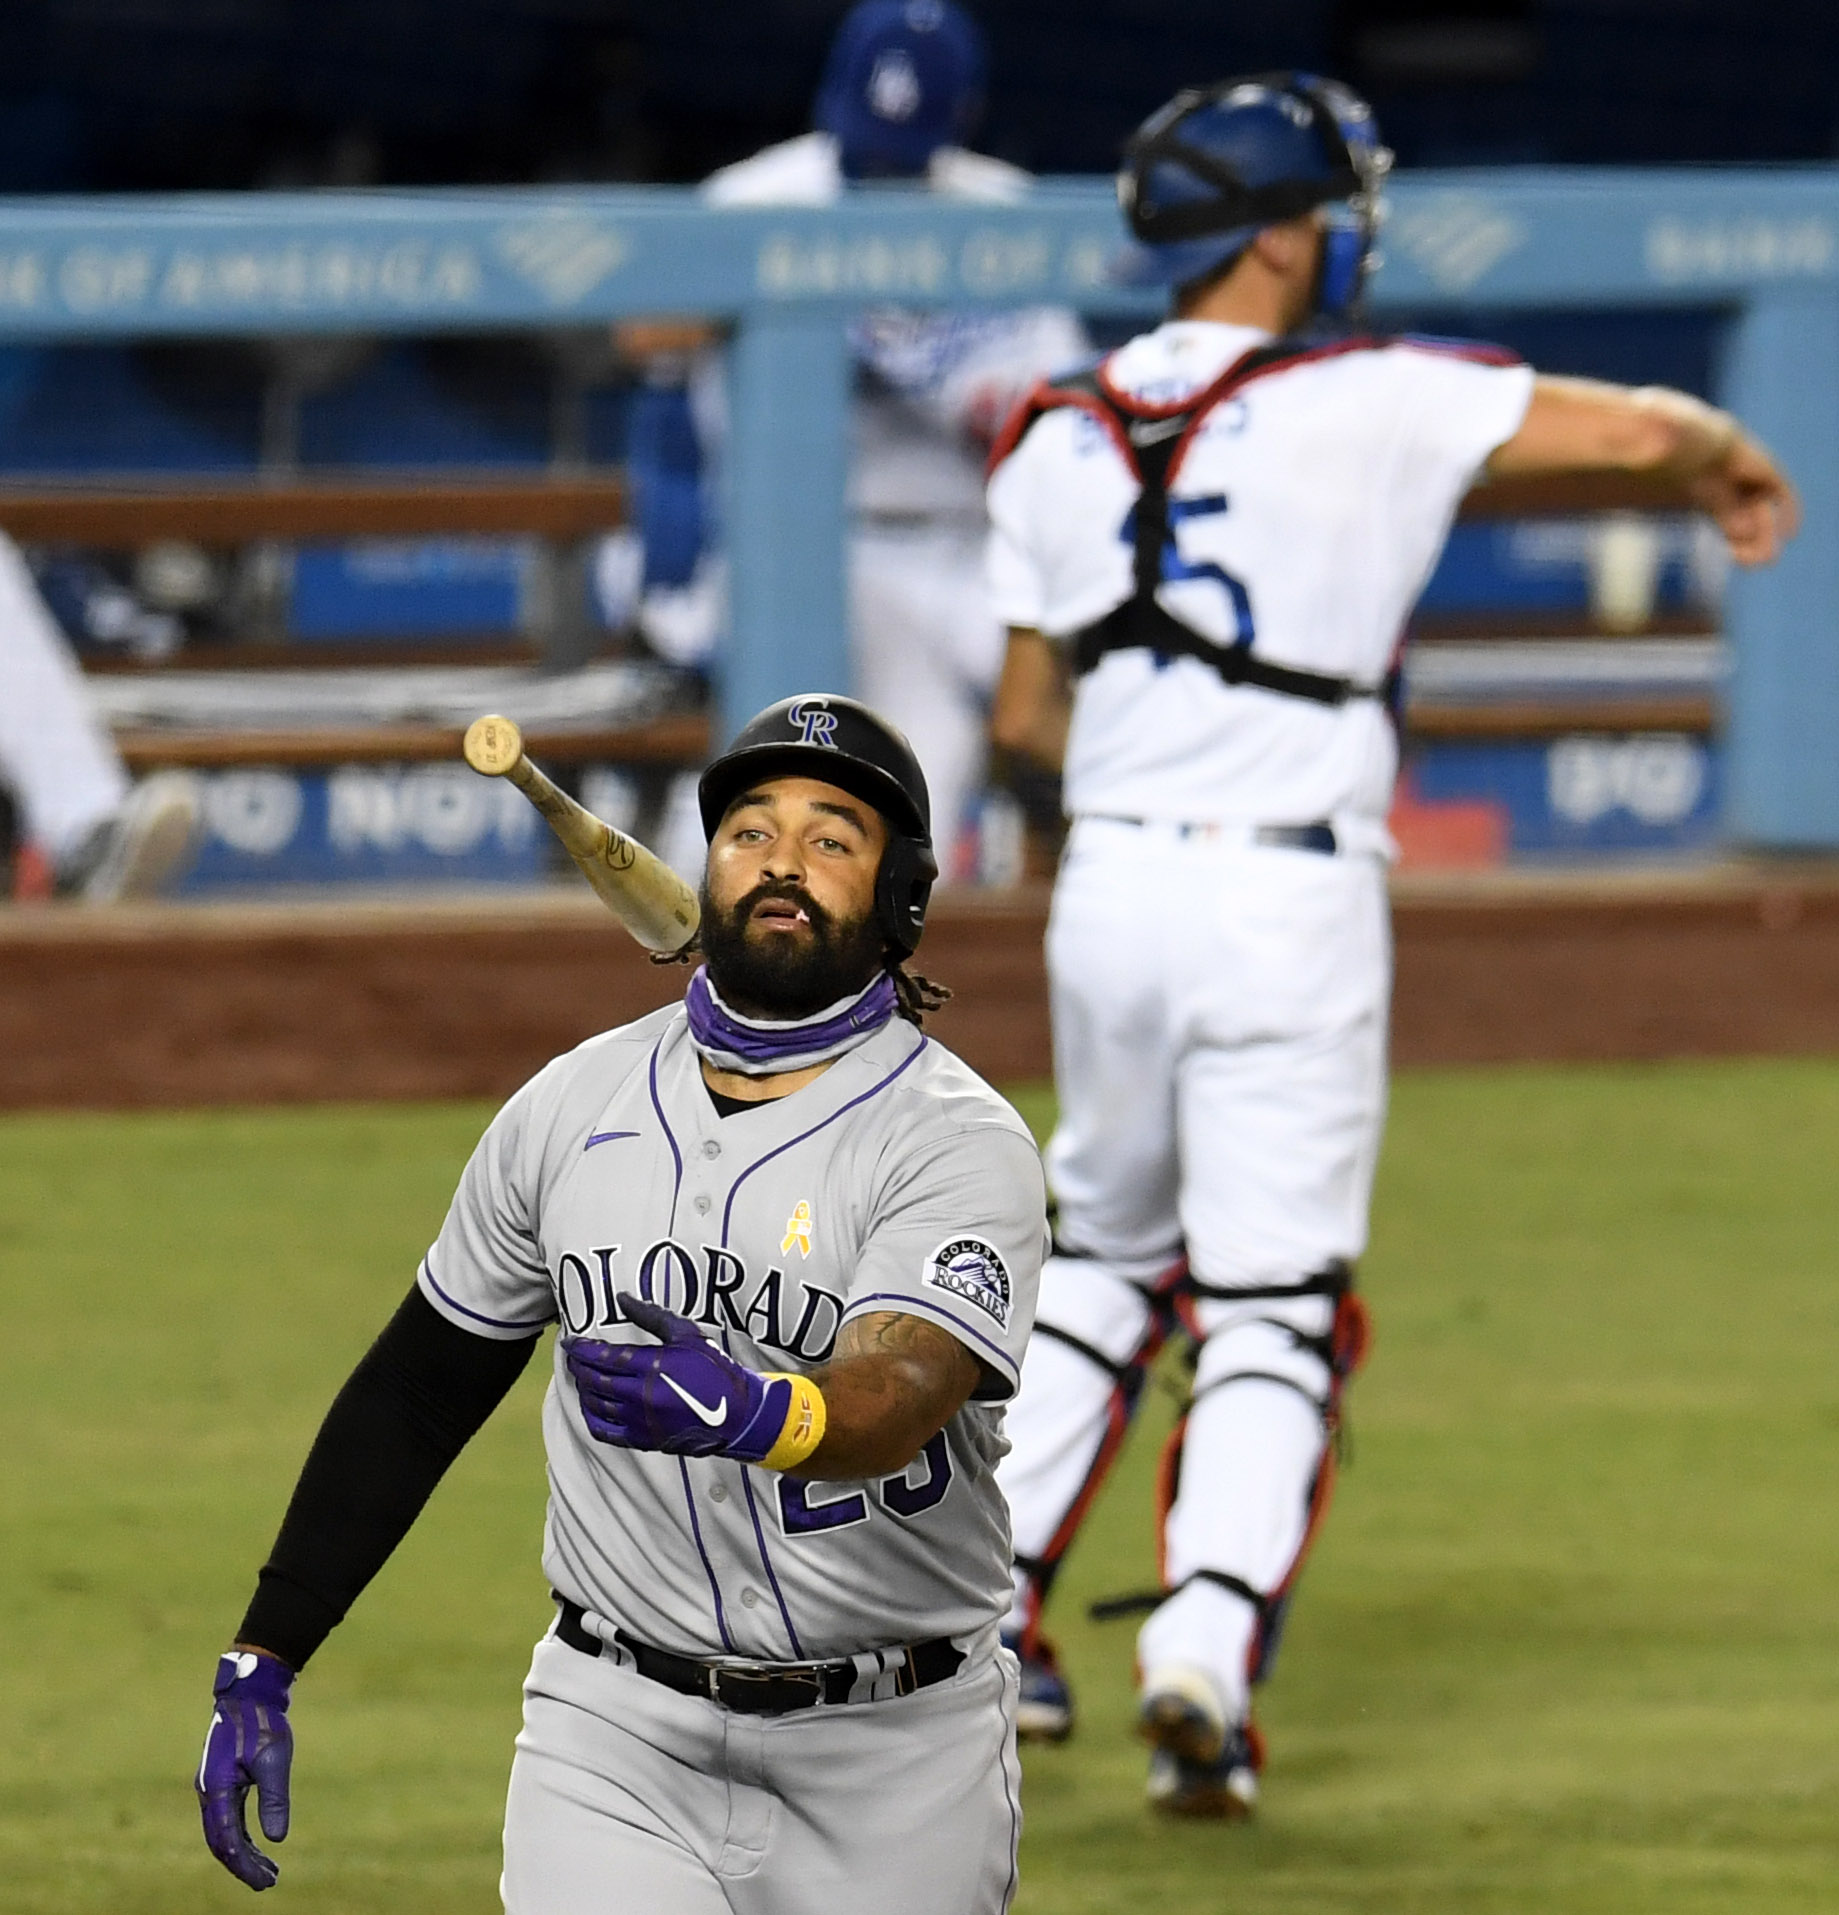 Colorado Rockies defeat the Los Angeles Dodgers 5-2.